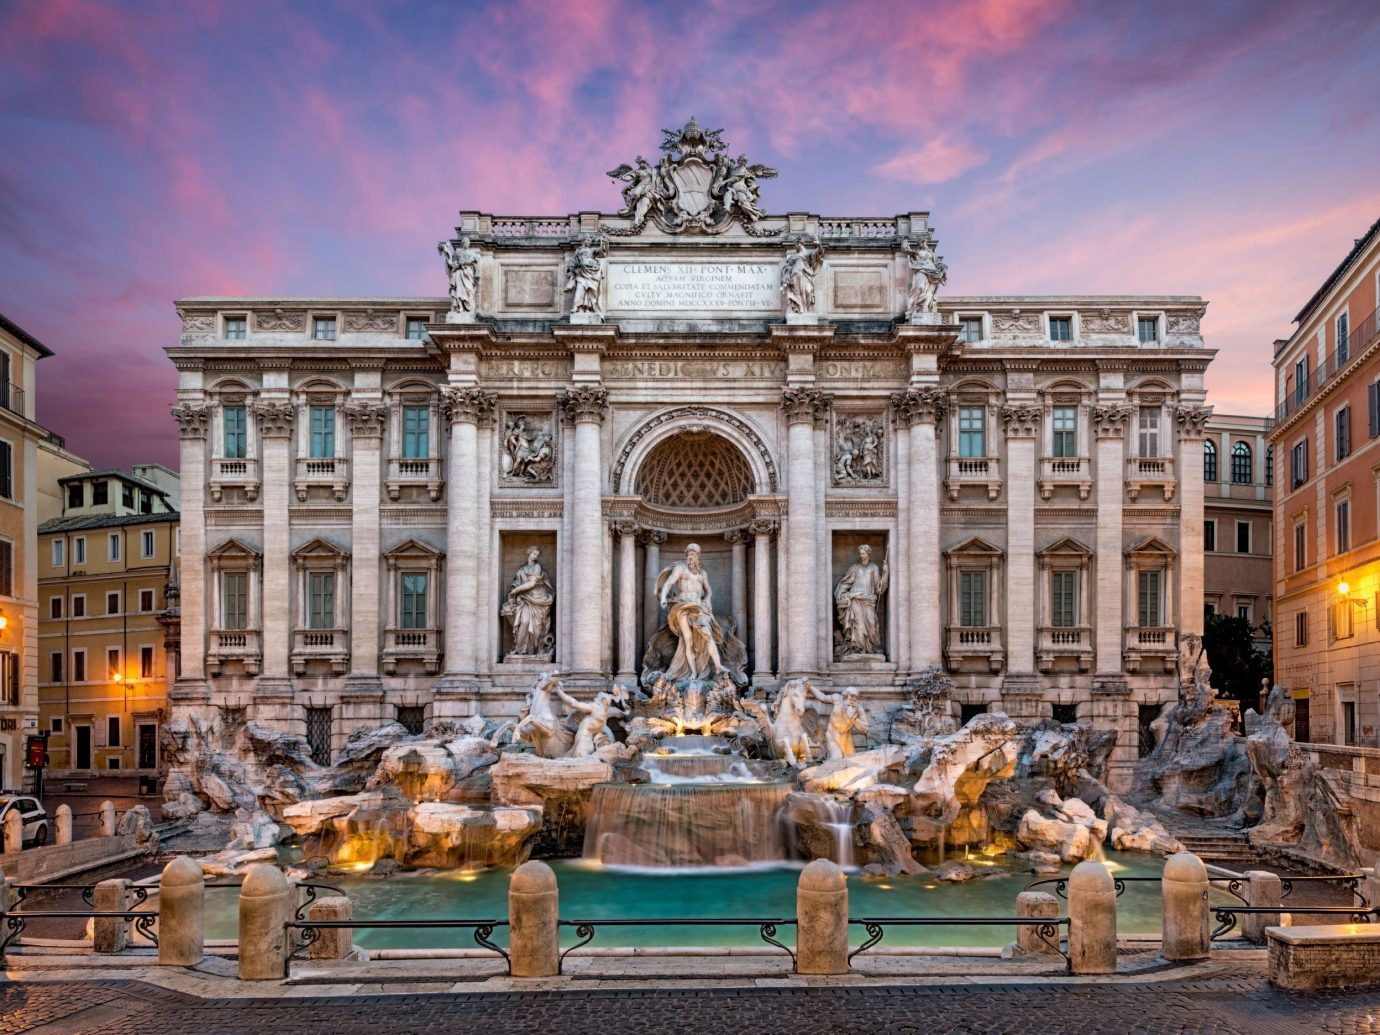 Trip Ideas building outdoor landmark plaza City human settlement metropolis Architecture ancient rome town square fountain cityscape palace facade water feature Downtown ancient history tourist attraction